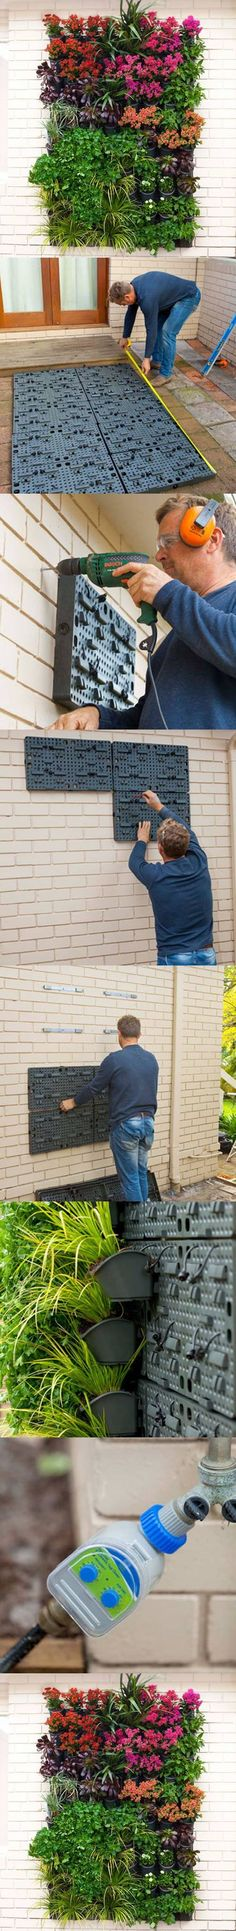 Step by Step Tutorial for a Vertical Garden